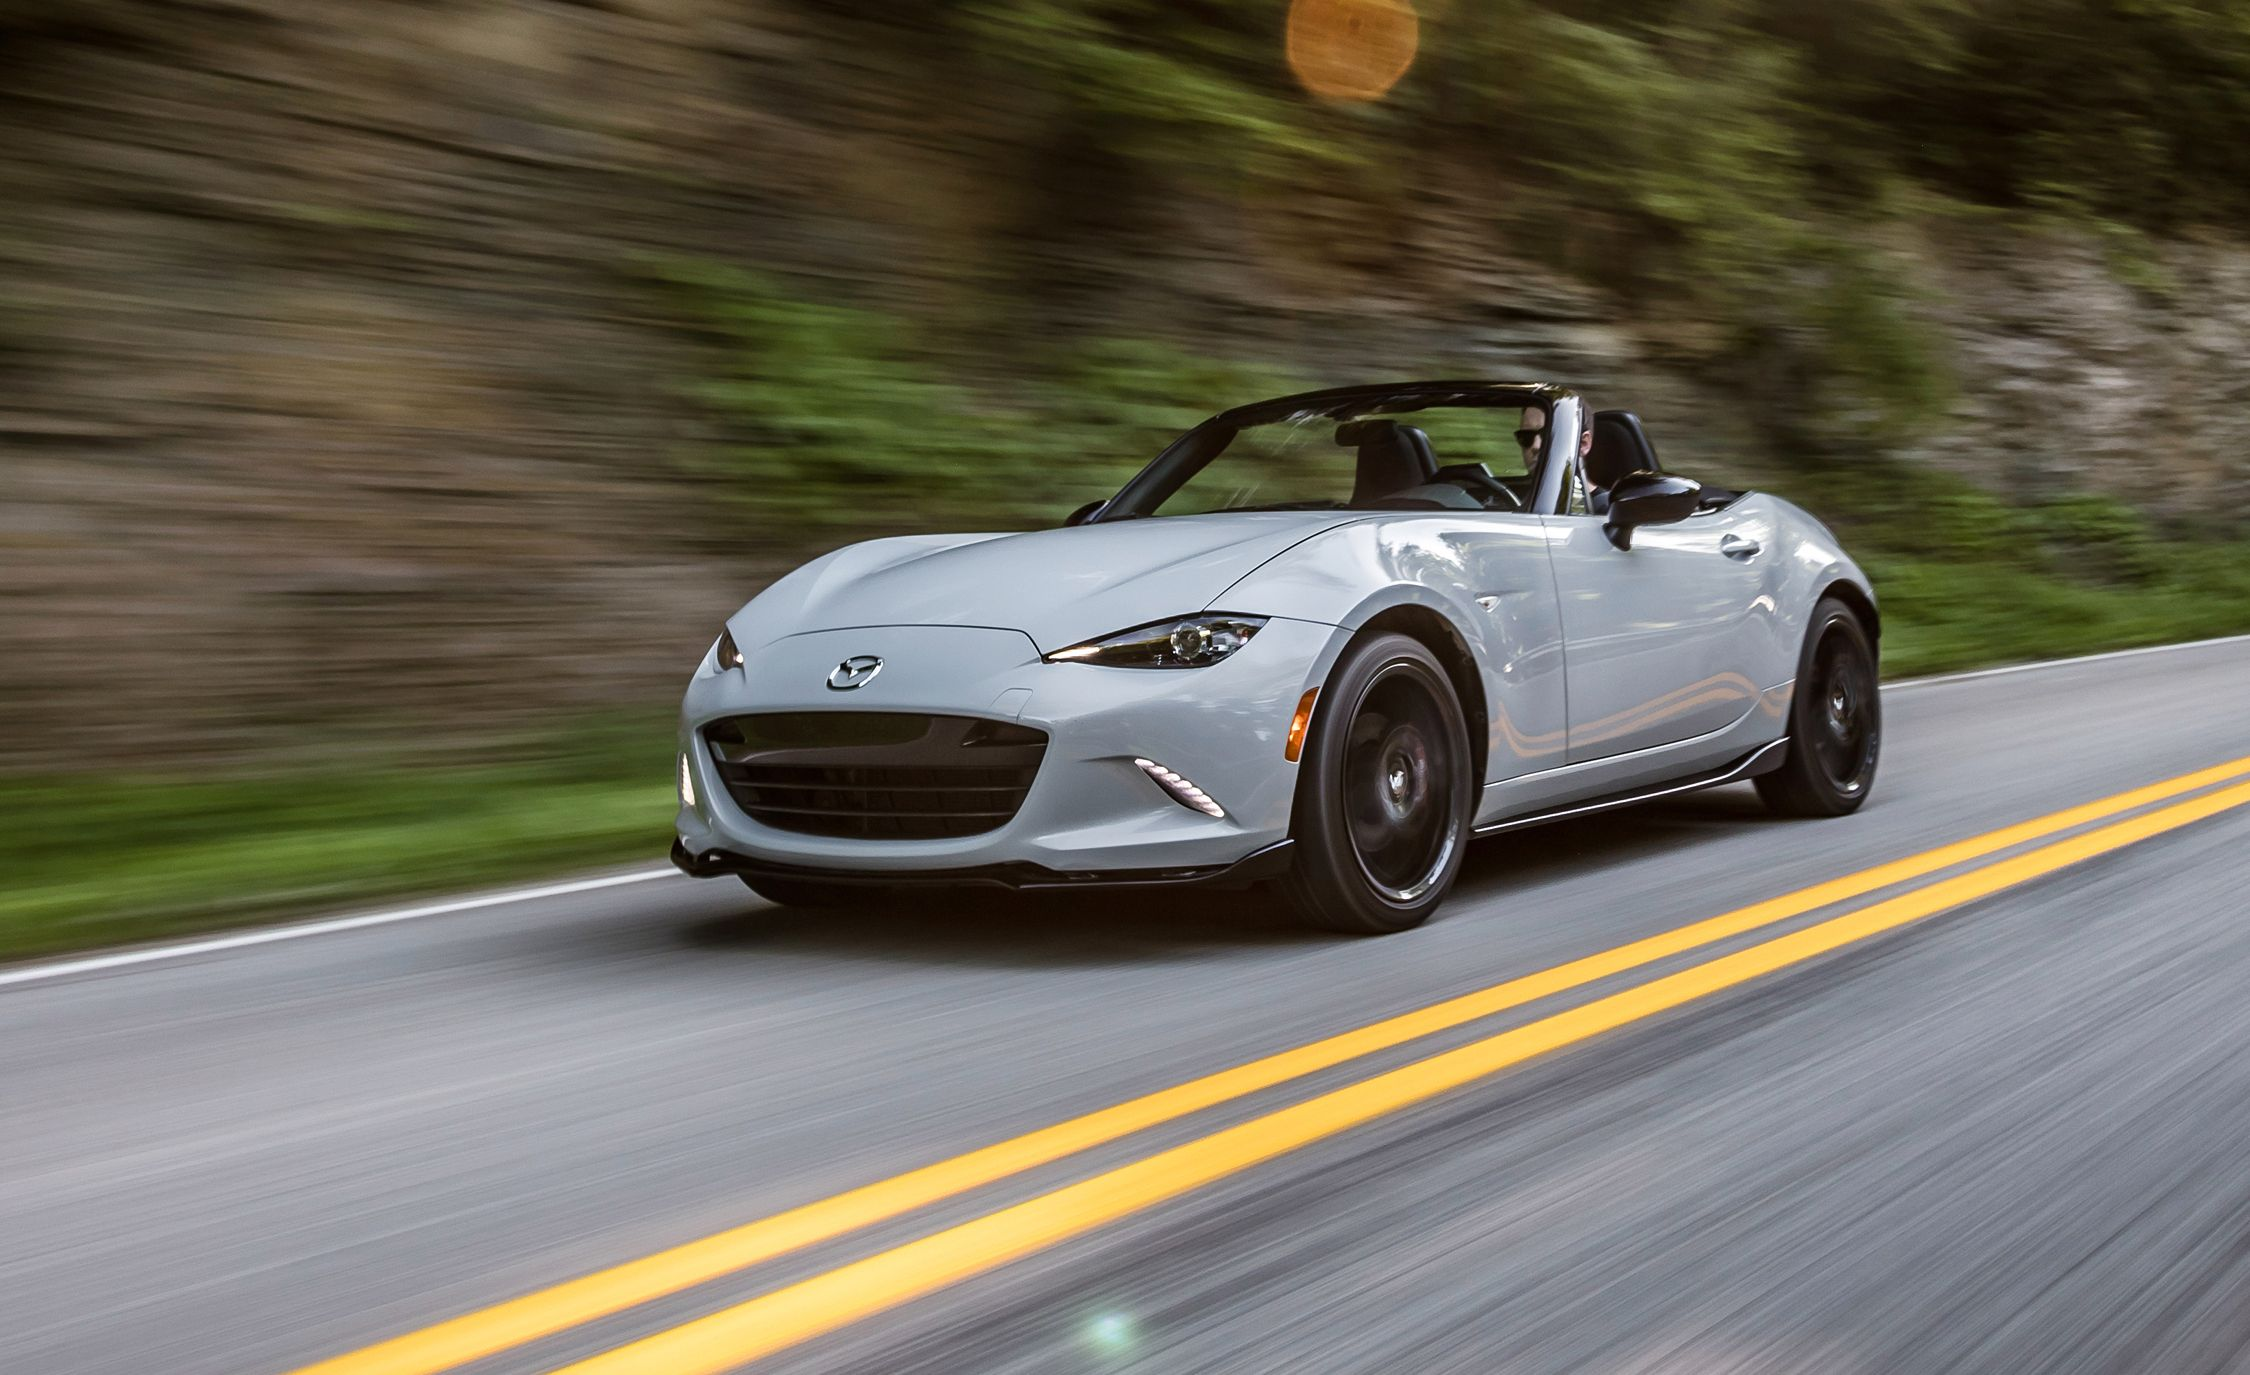 2016 Mazda MX-5 Miata Long-Term Test | Review | Car and Driver